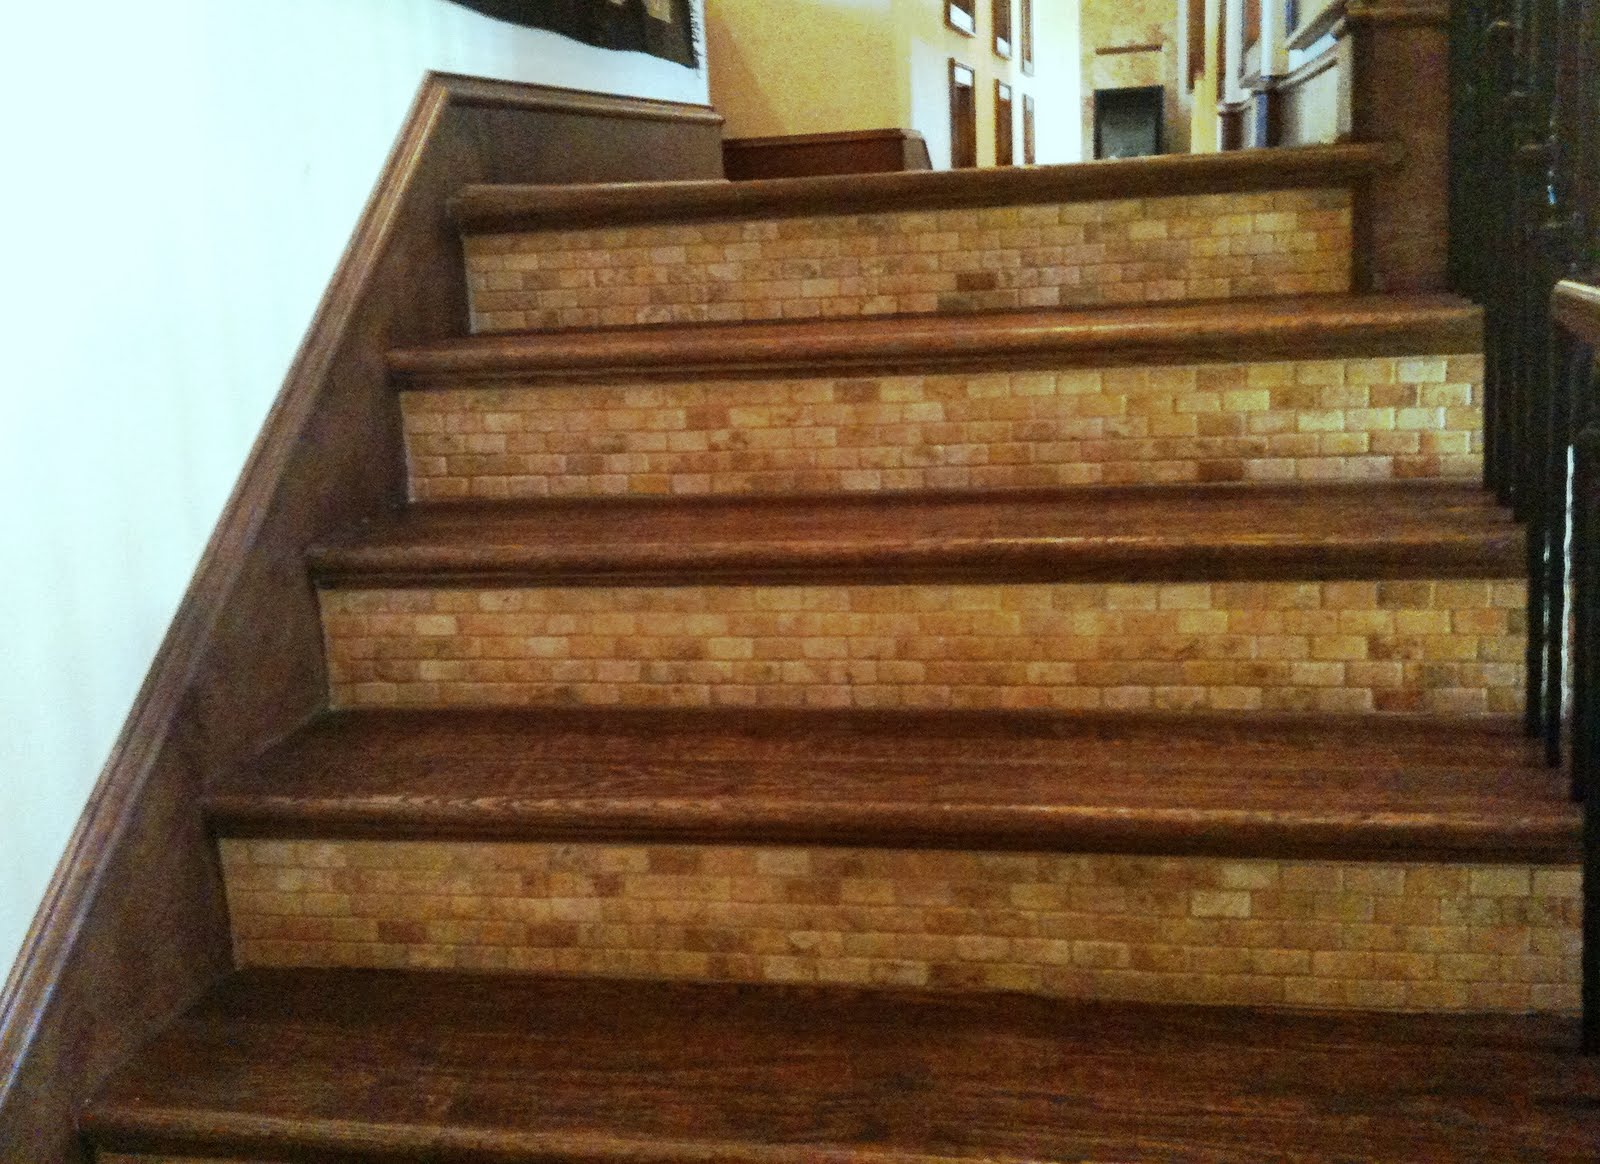 North Dallas Real Estate: Spruce Up Your Stairs